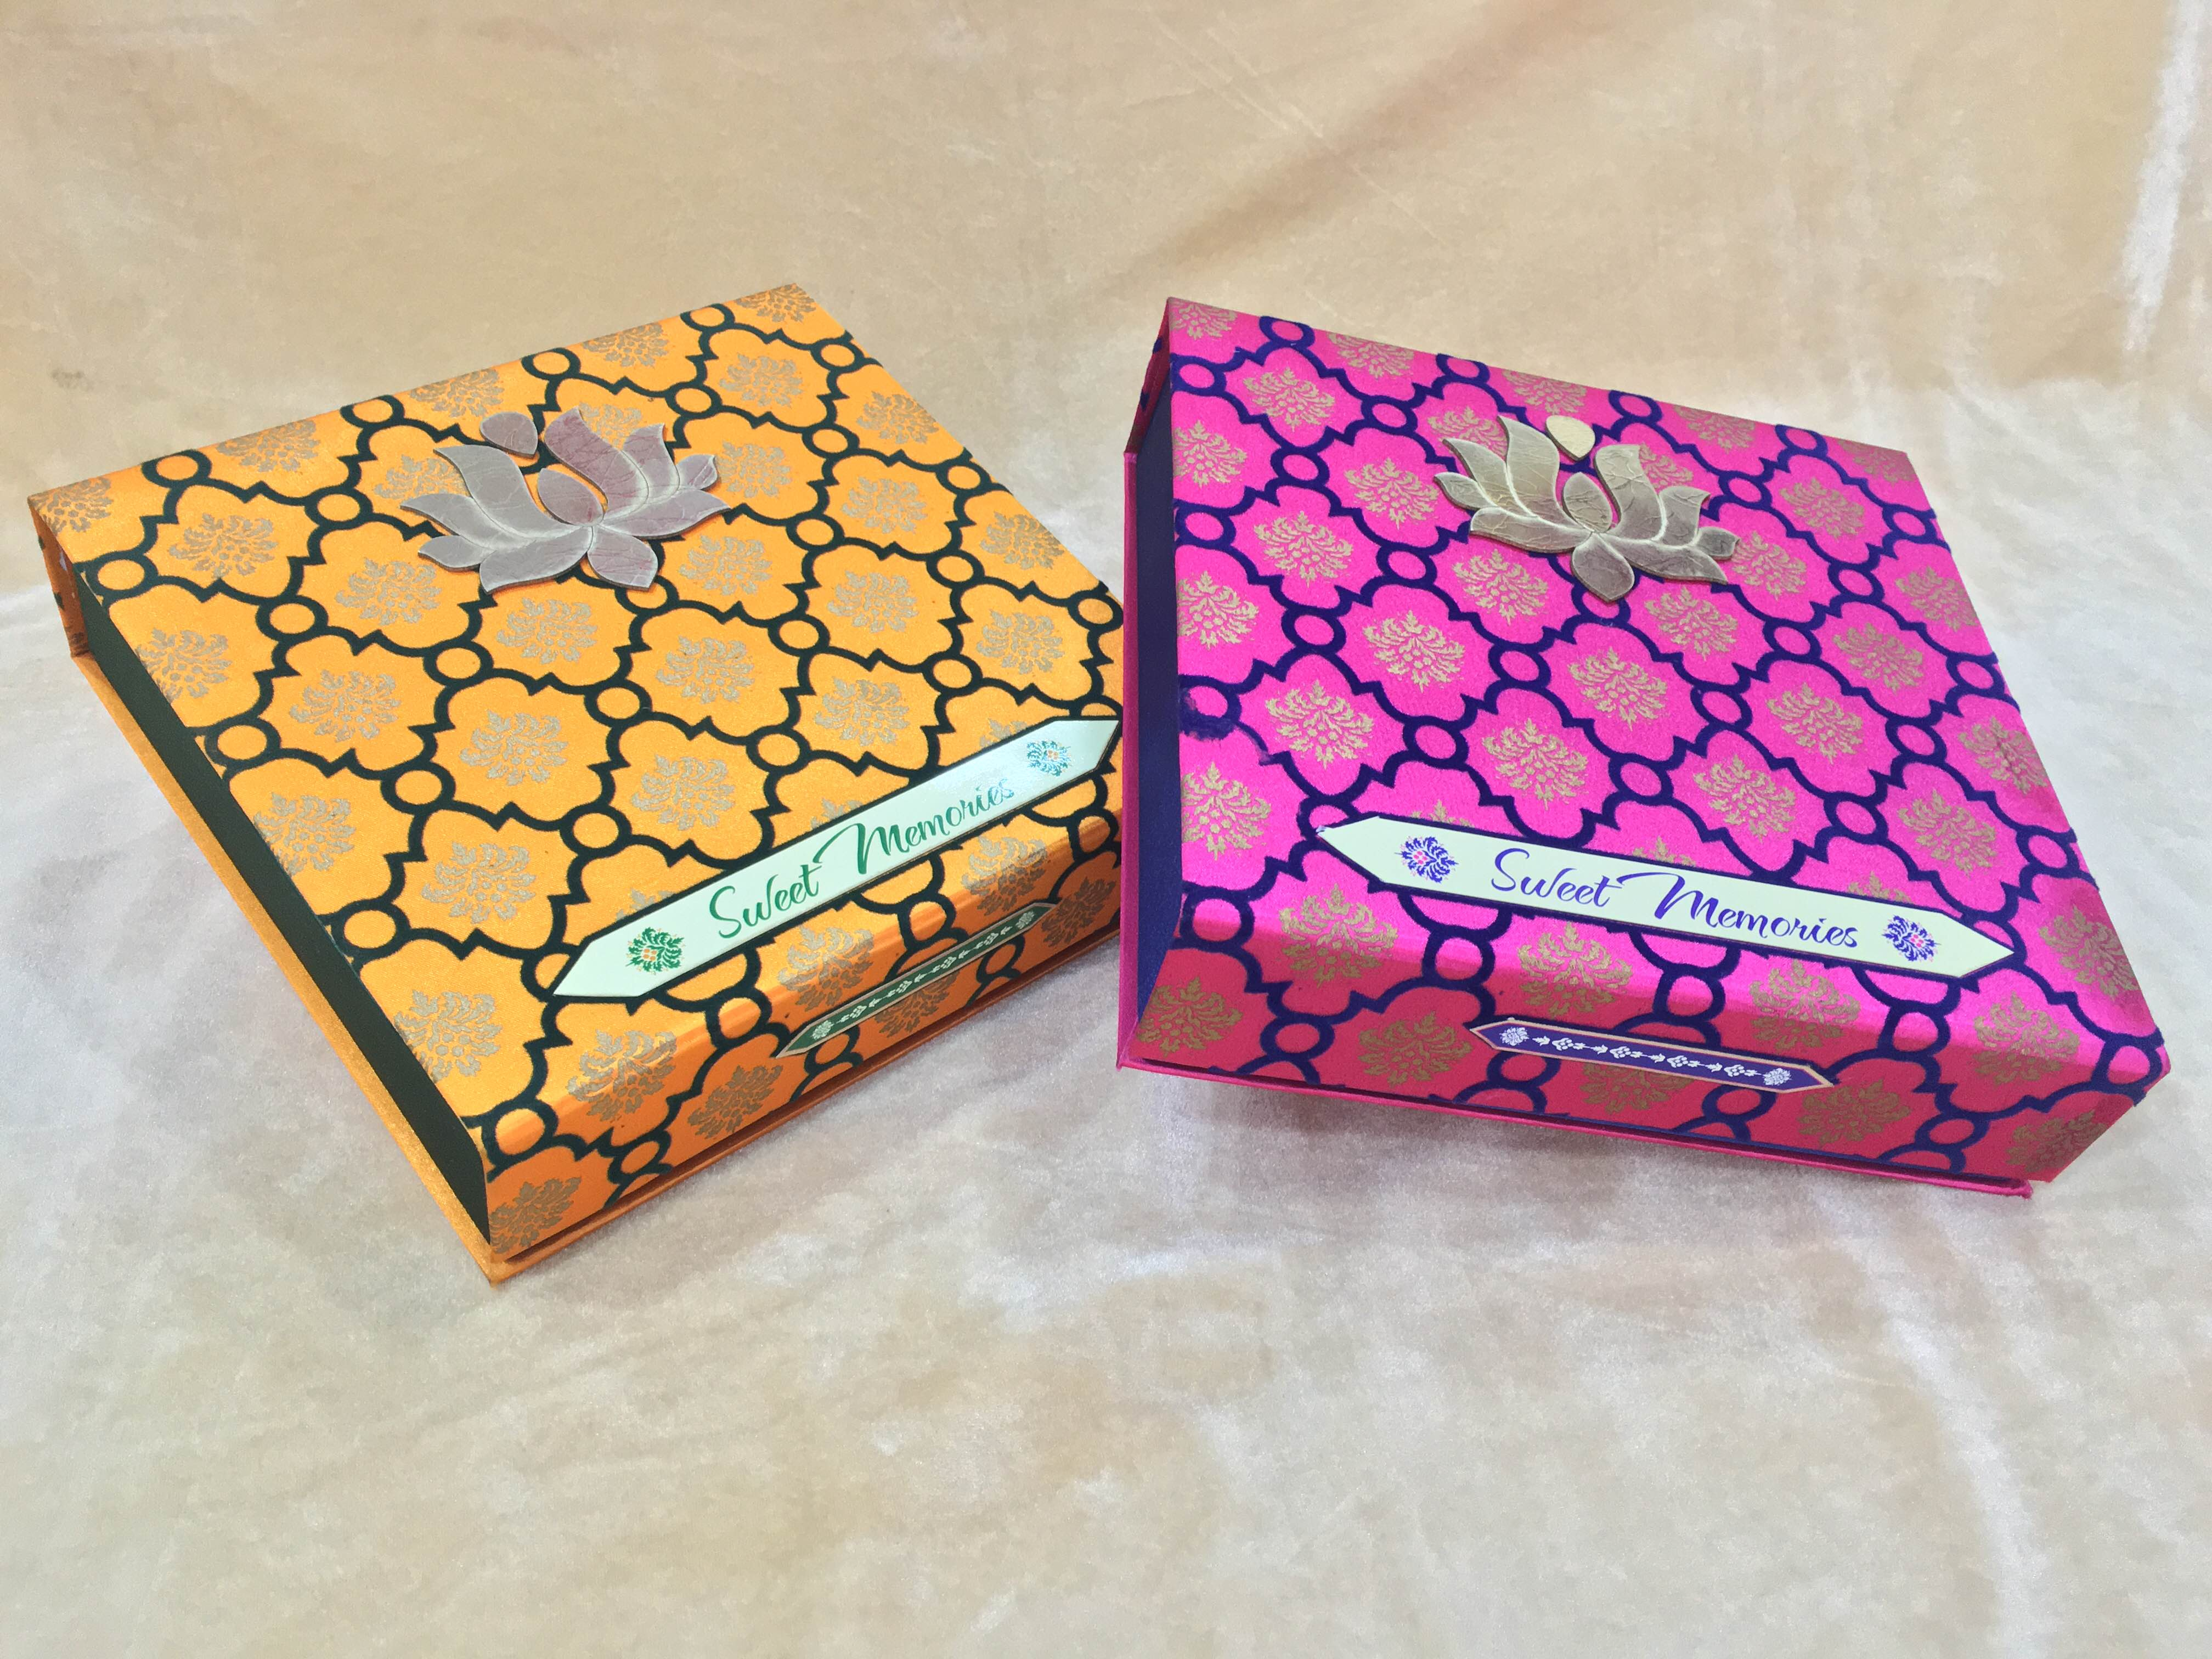 Dry Fruit Diwali Box  We are leading manufacturer, supplier and wholesaler of Dry Fruit Diwali Box in Delhi